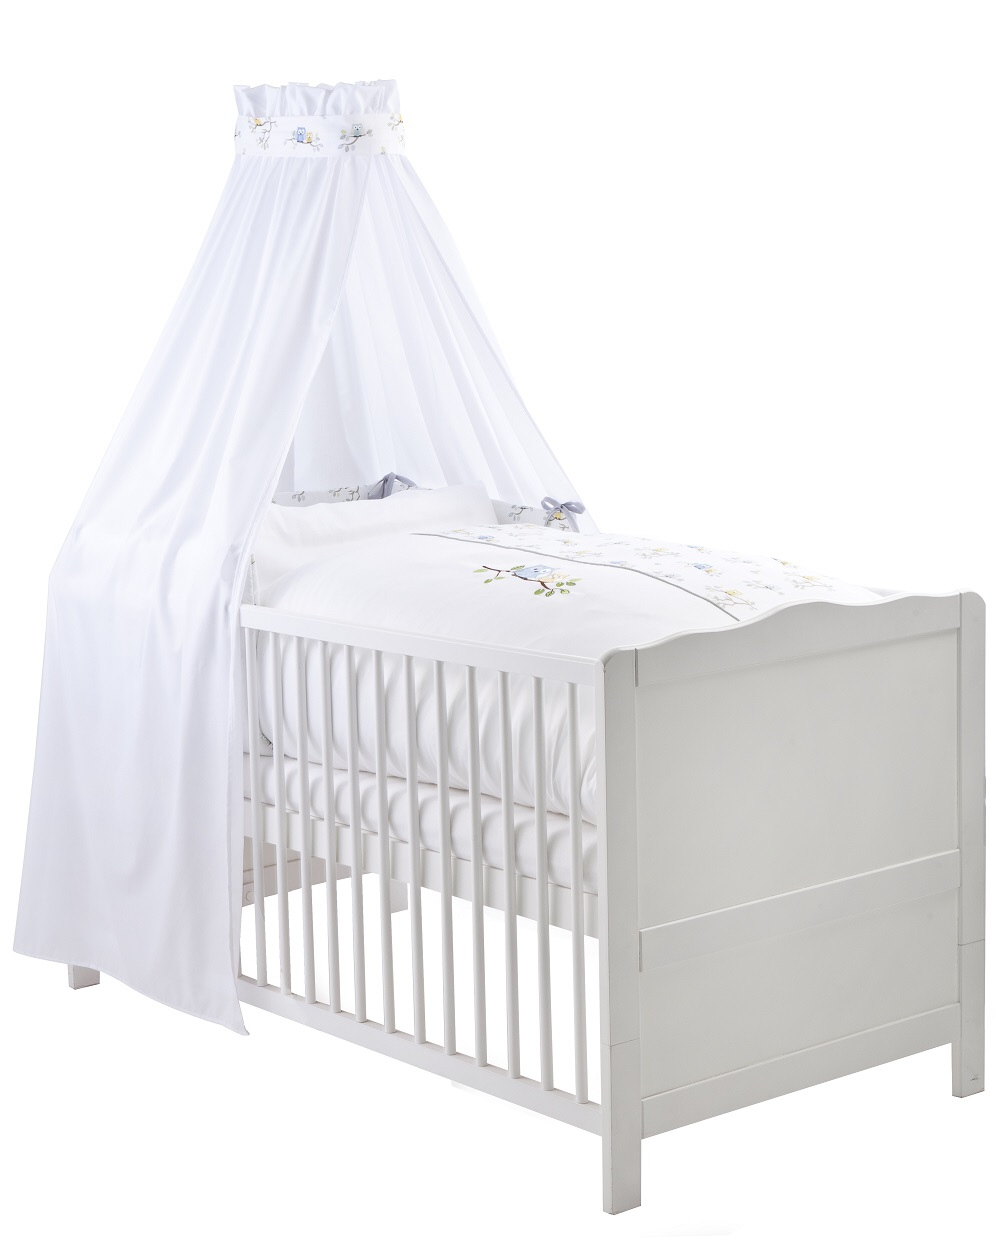 ensemble voile et linges de lit petites chouettes blanc. Black Bedroom Furniture Sets. Home Design Ideas